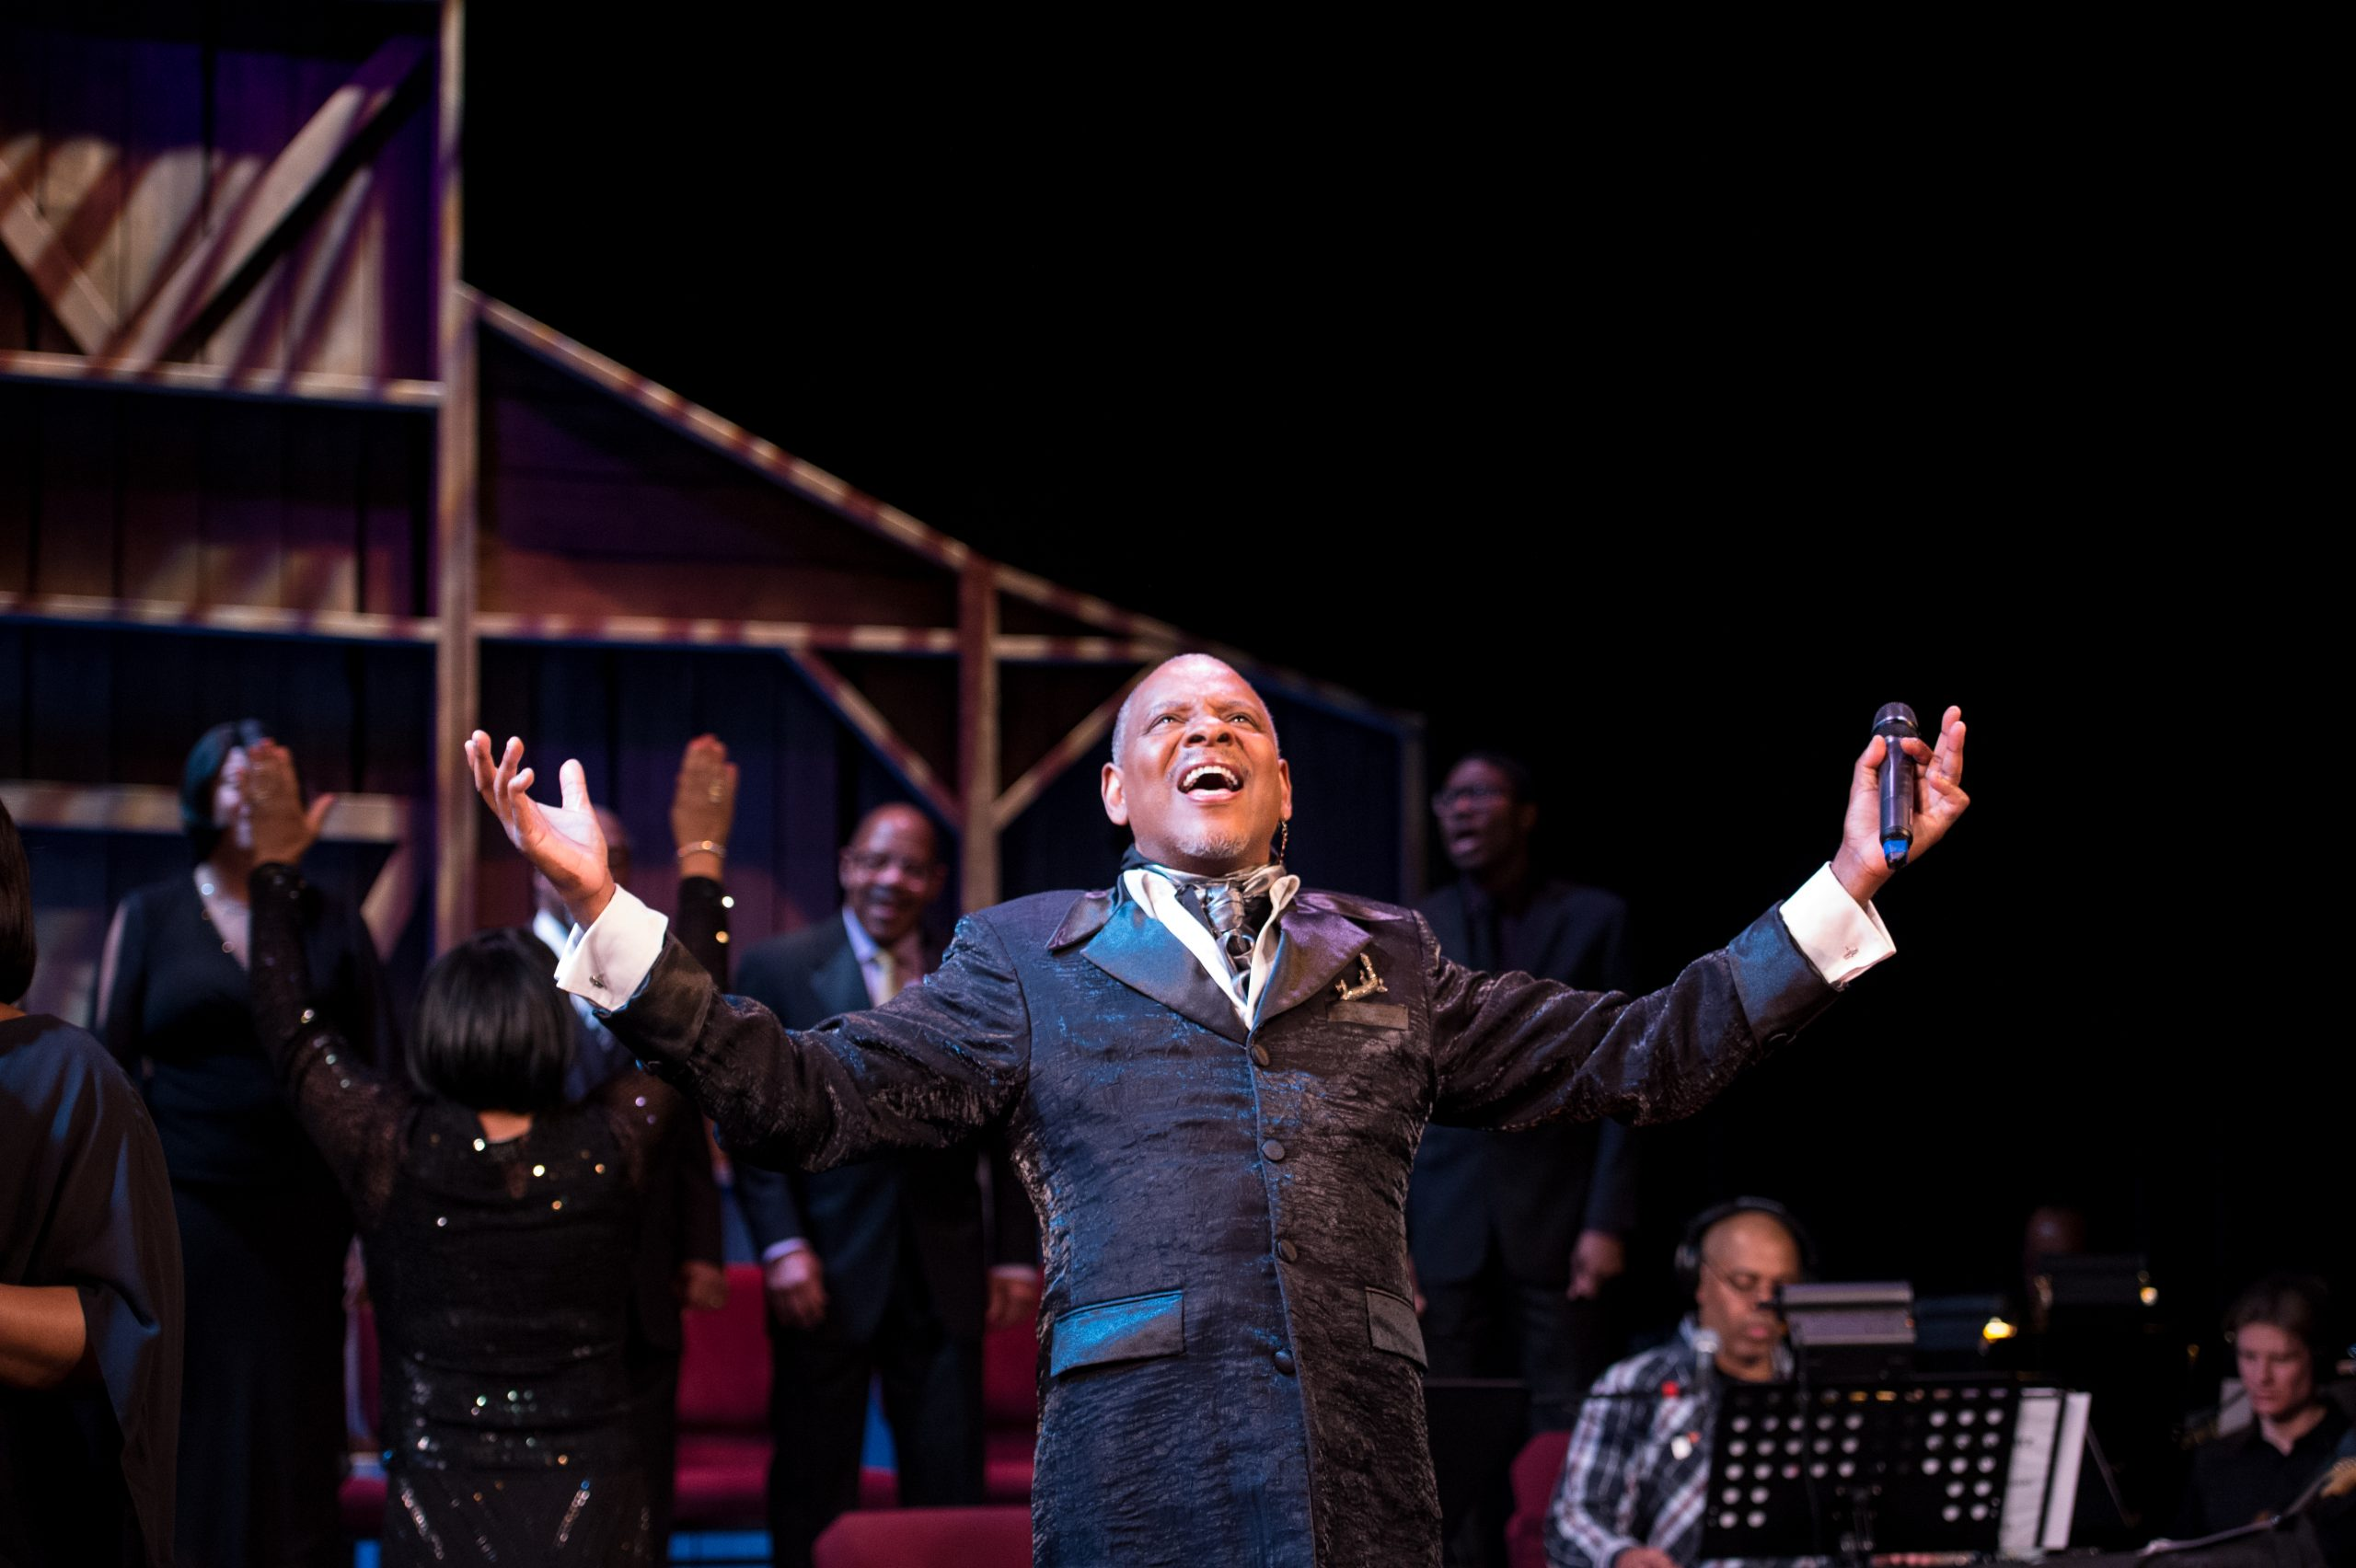 """Dennis Spears in a production of """"Black Nativity"""" at Penumbra Theatre, which returns piecemeal this year in virtual form"""